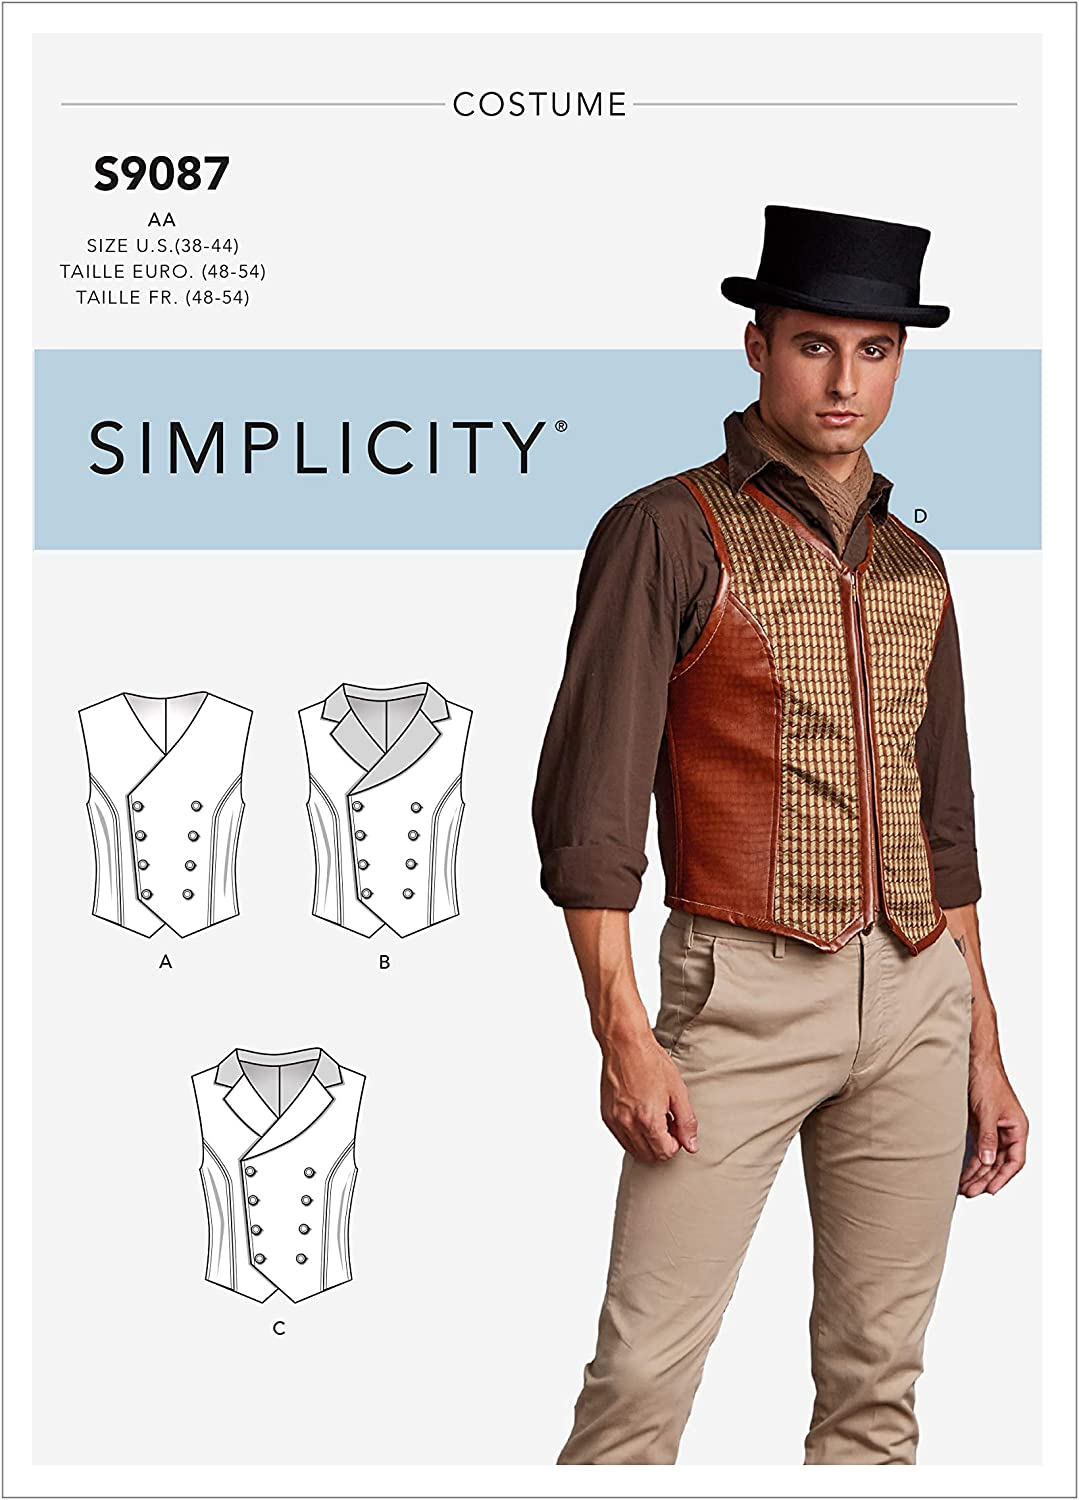 Simplicity Creative Patterns US8408AA Sewing Pattern Costumes 38//40//42//44